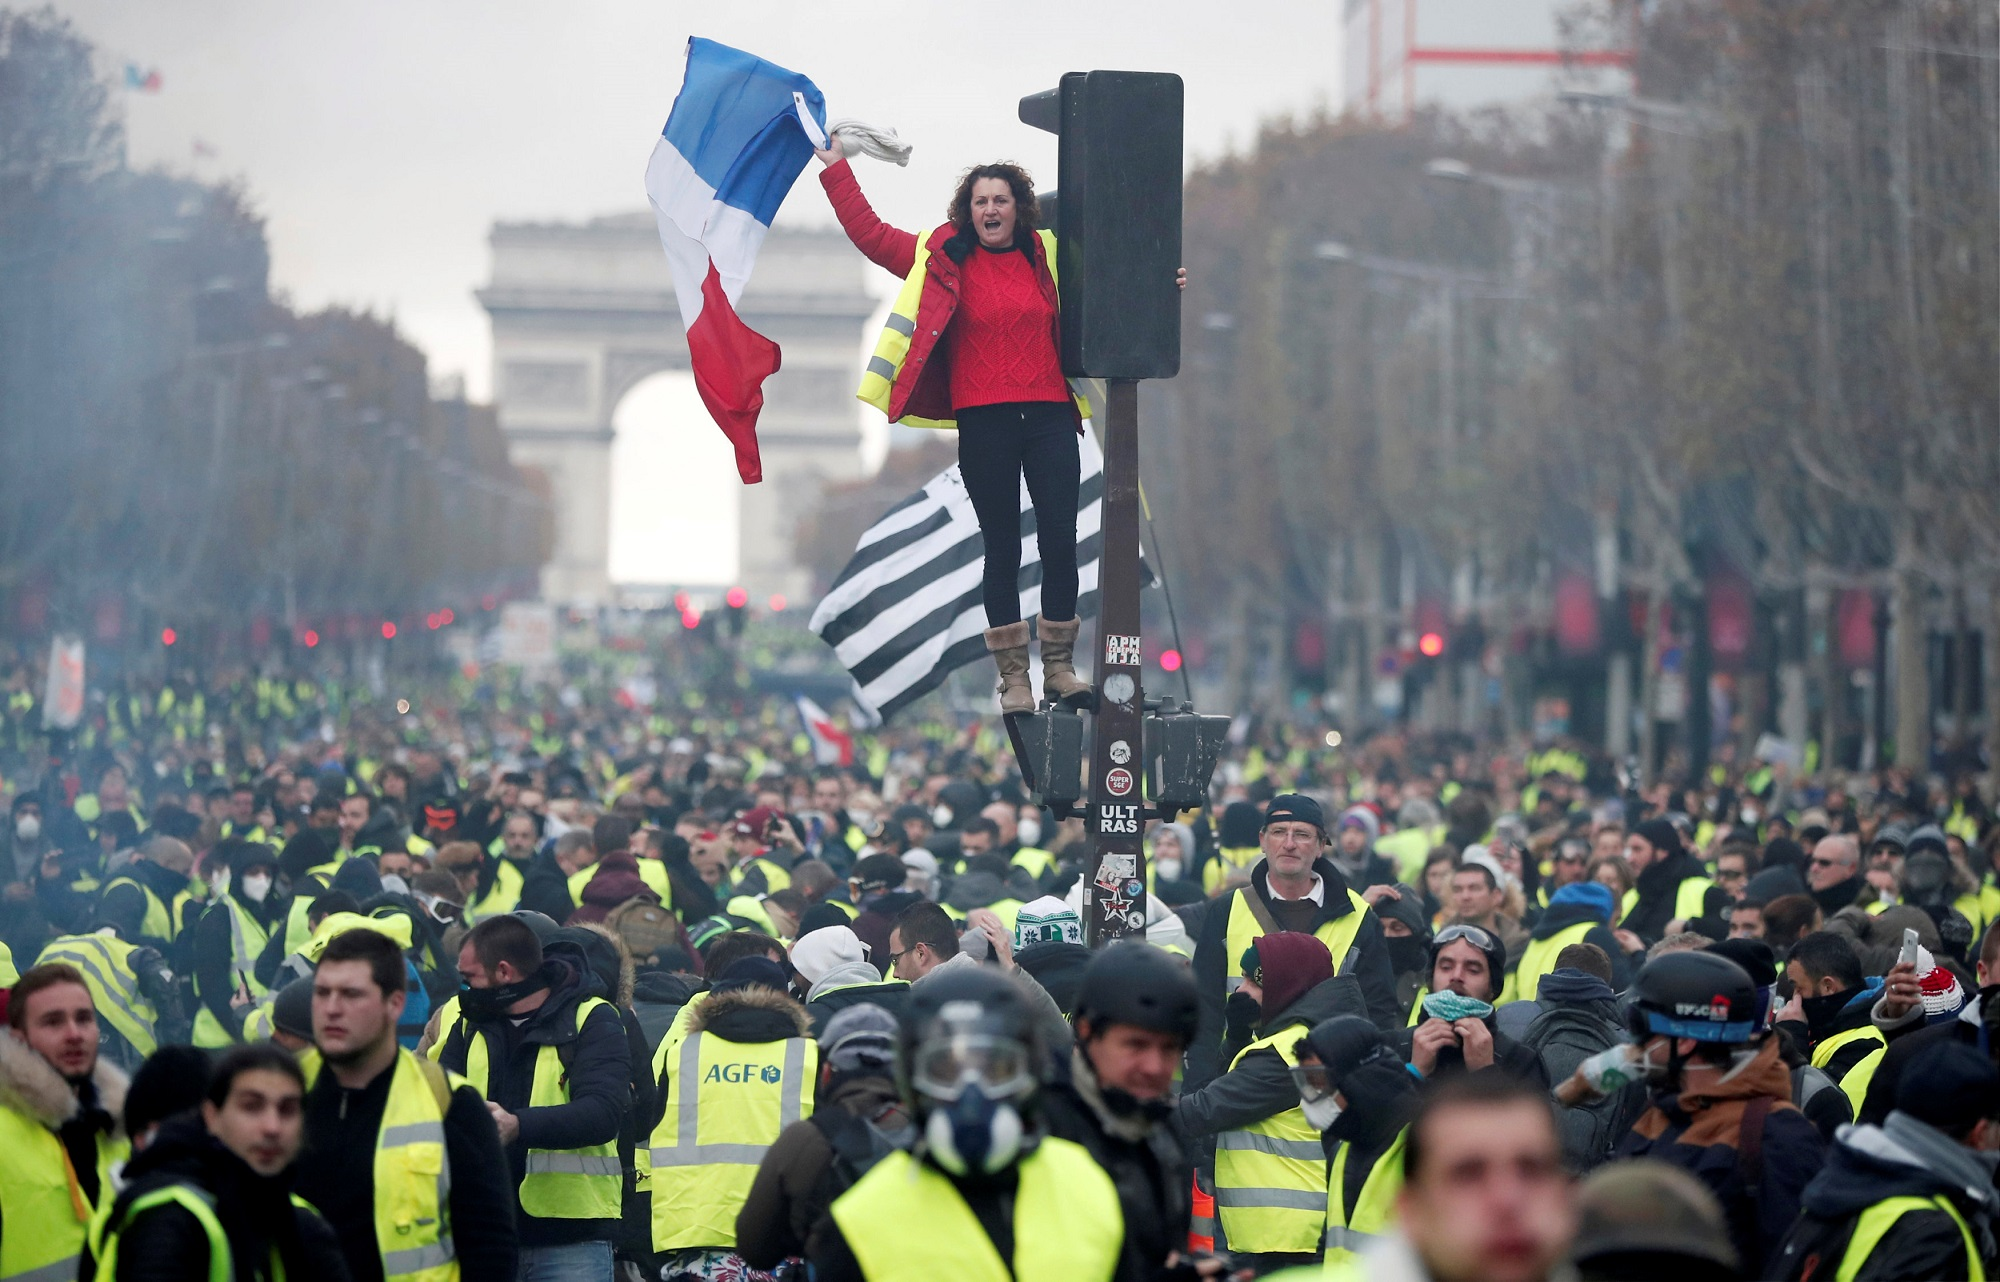 Cover for: Who are the gilets jaunes?